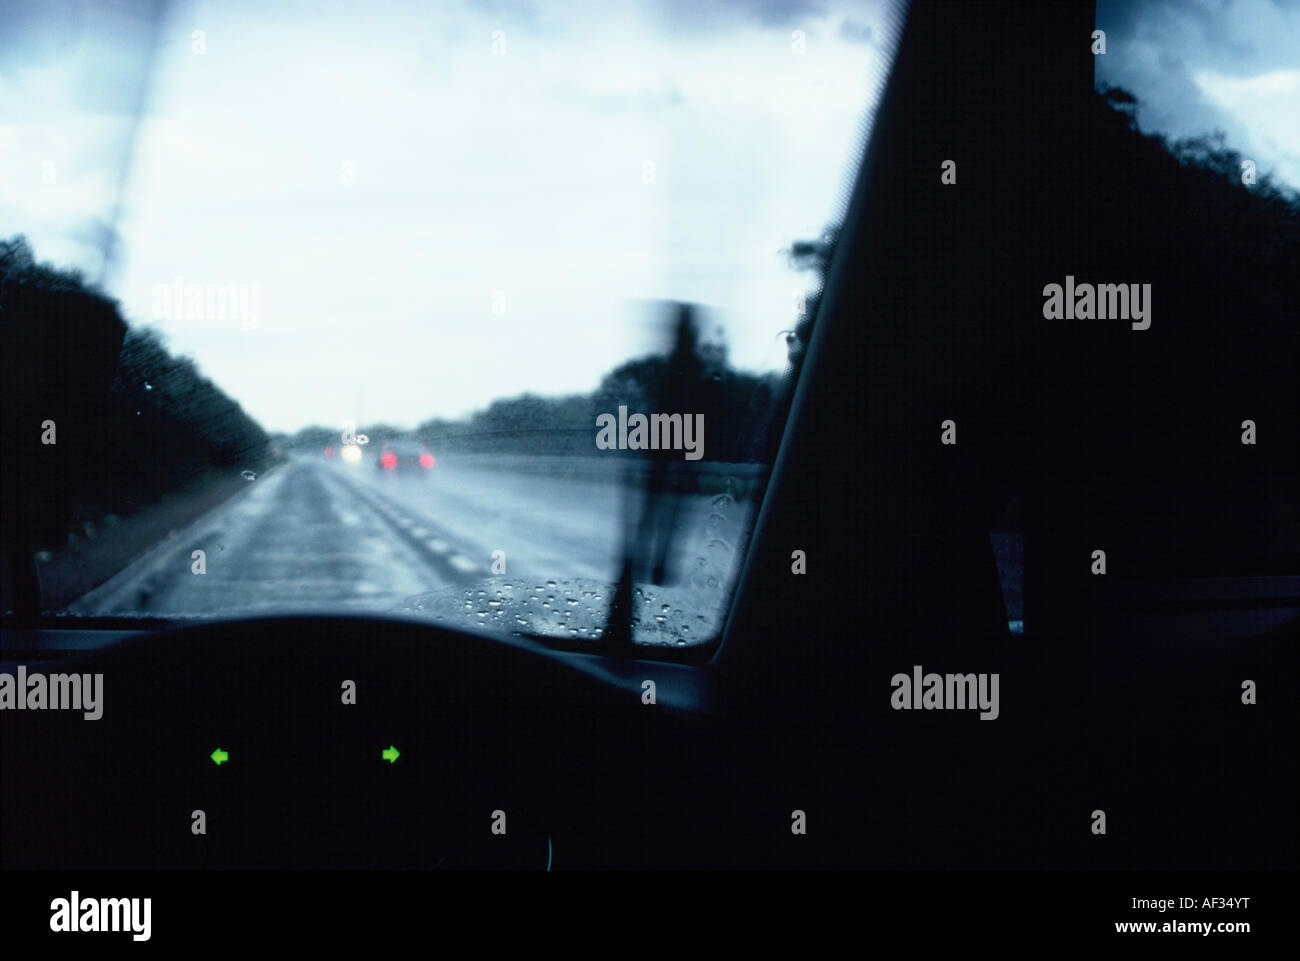 drivers eye view from the interior of a car parked in the rain on the stock photo royalty free. Black Bedroom Furniture Sets. Home Design Ideas